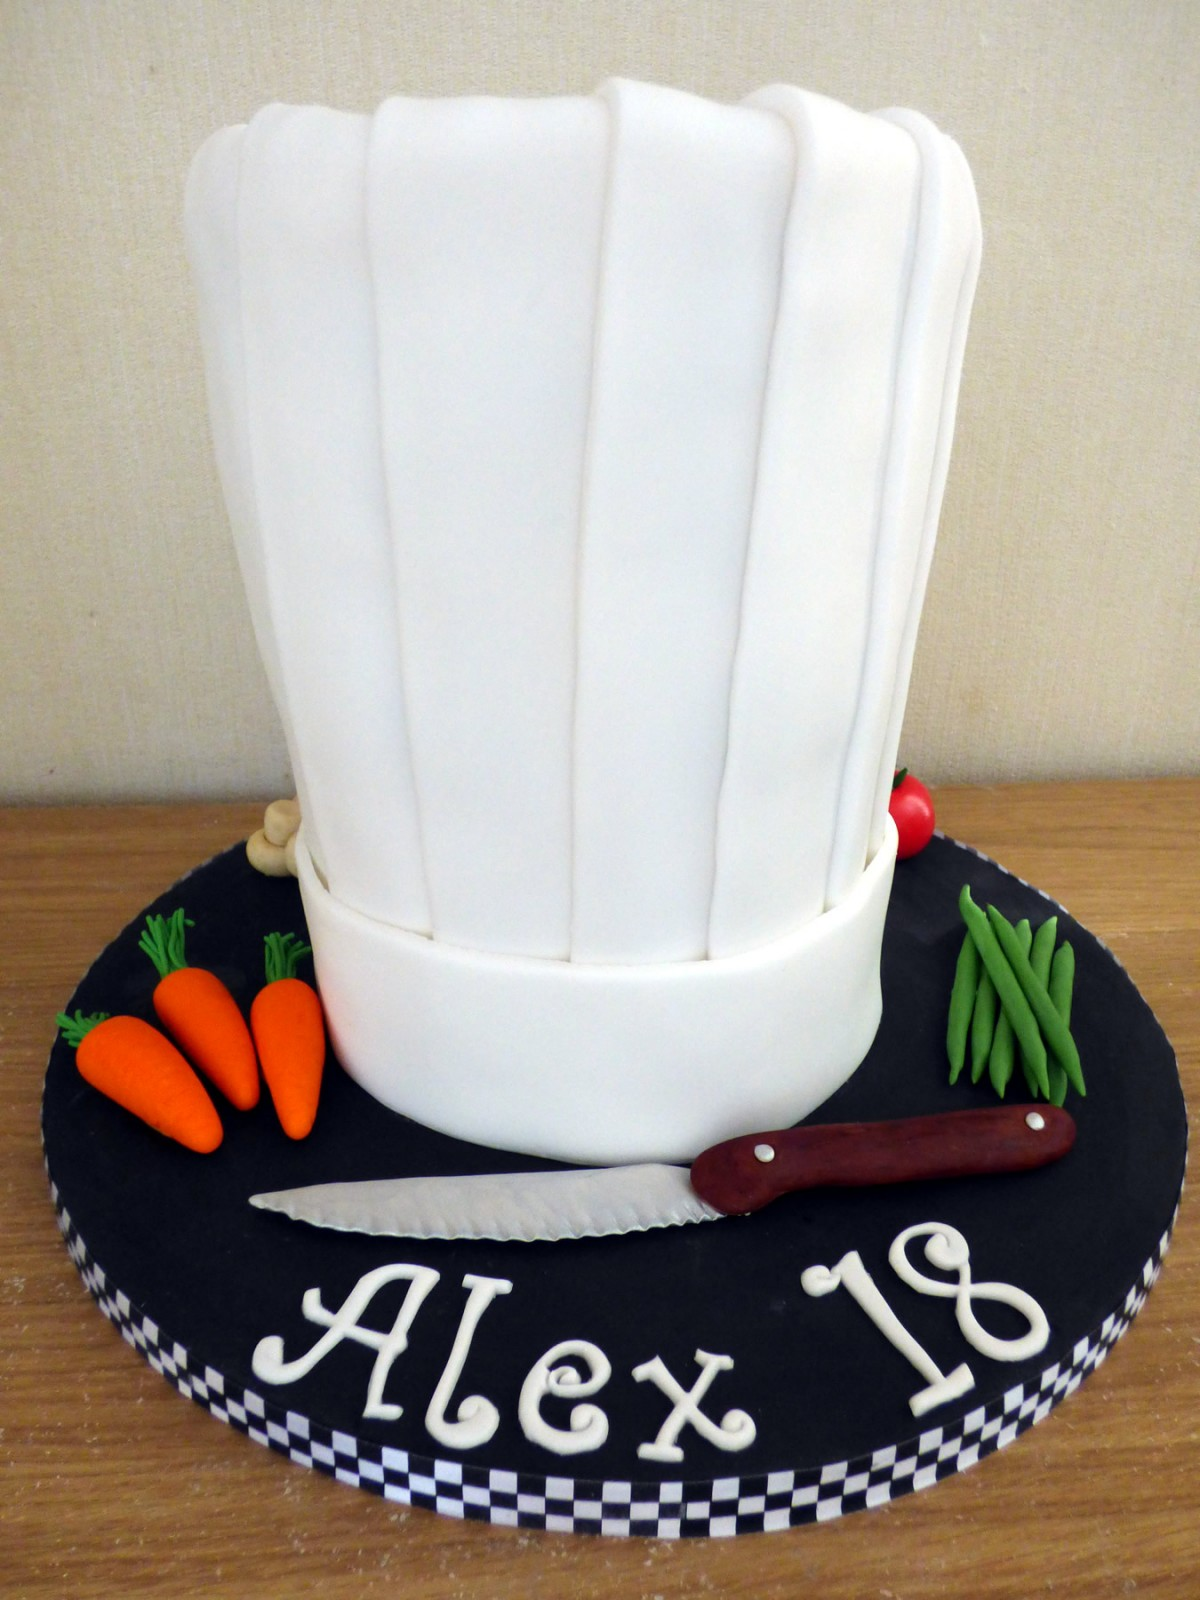 Chefs Hat With Vegetables Birthday Cake